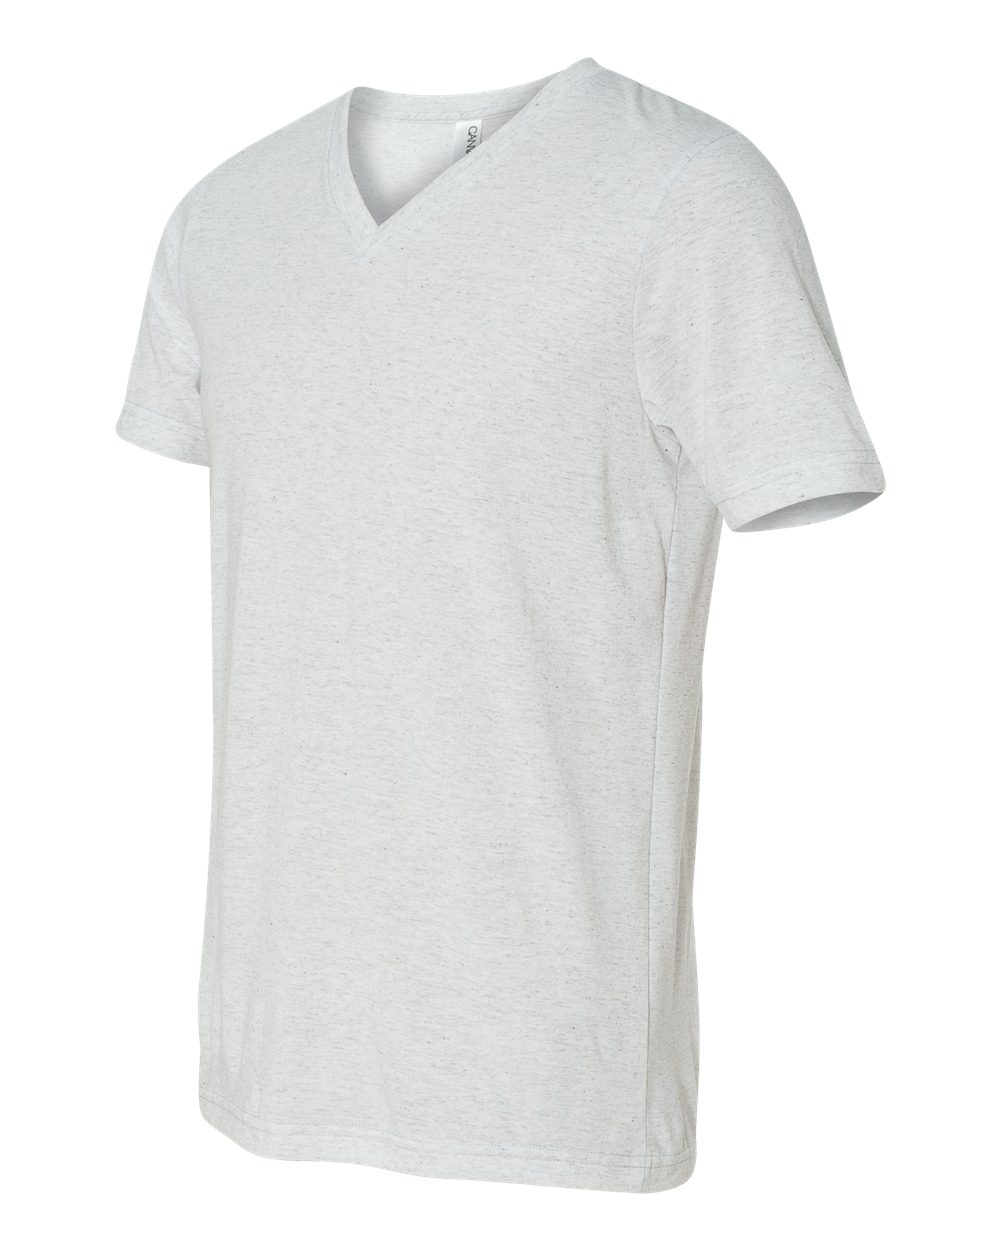 9b678ae19ab Fitted White V Neck T Shirts - BCD Tofu House